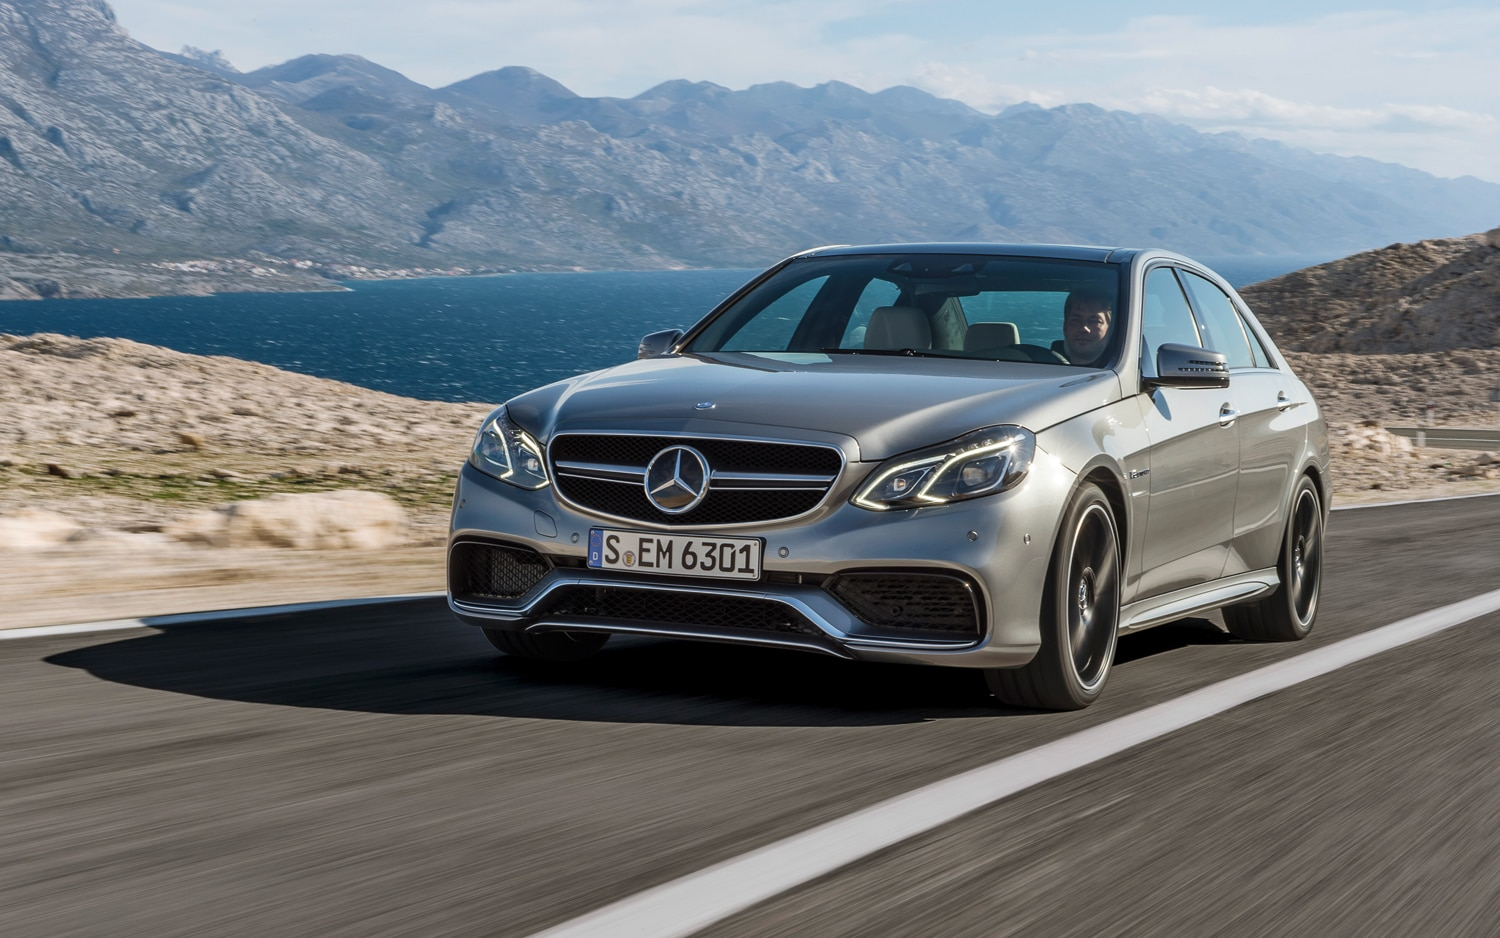 2014 Mercedes Benz E63 AMG 4MATIC Front Three Quarters In Motion1